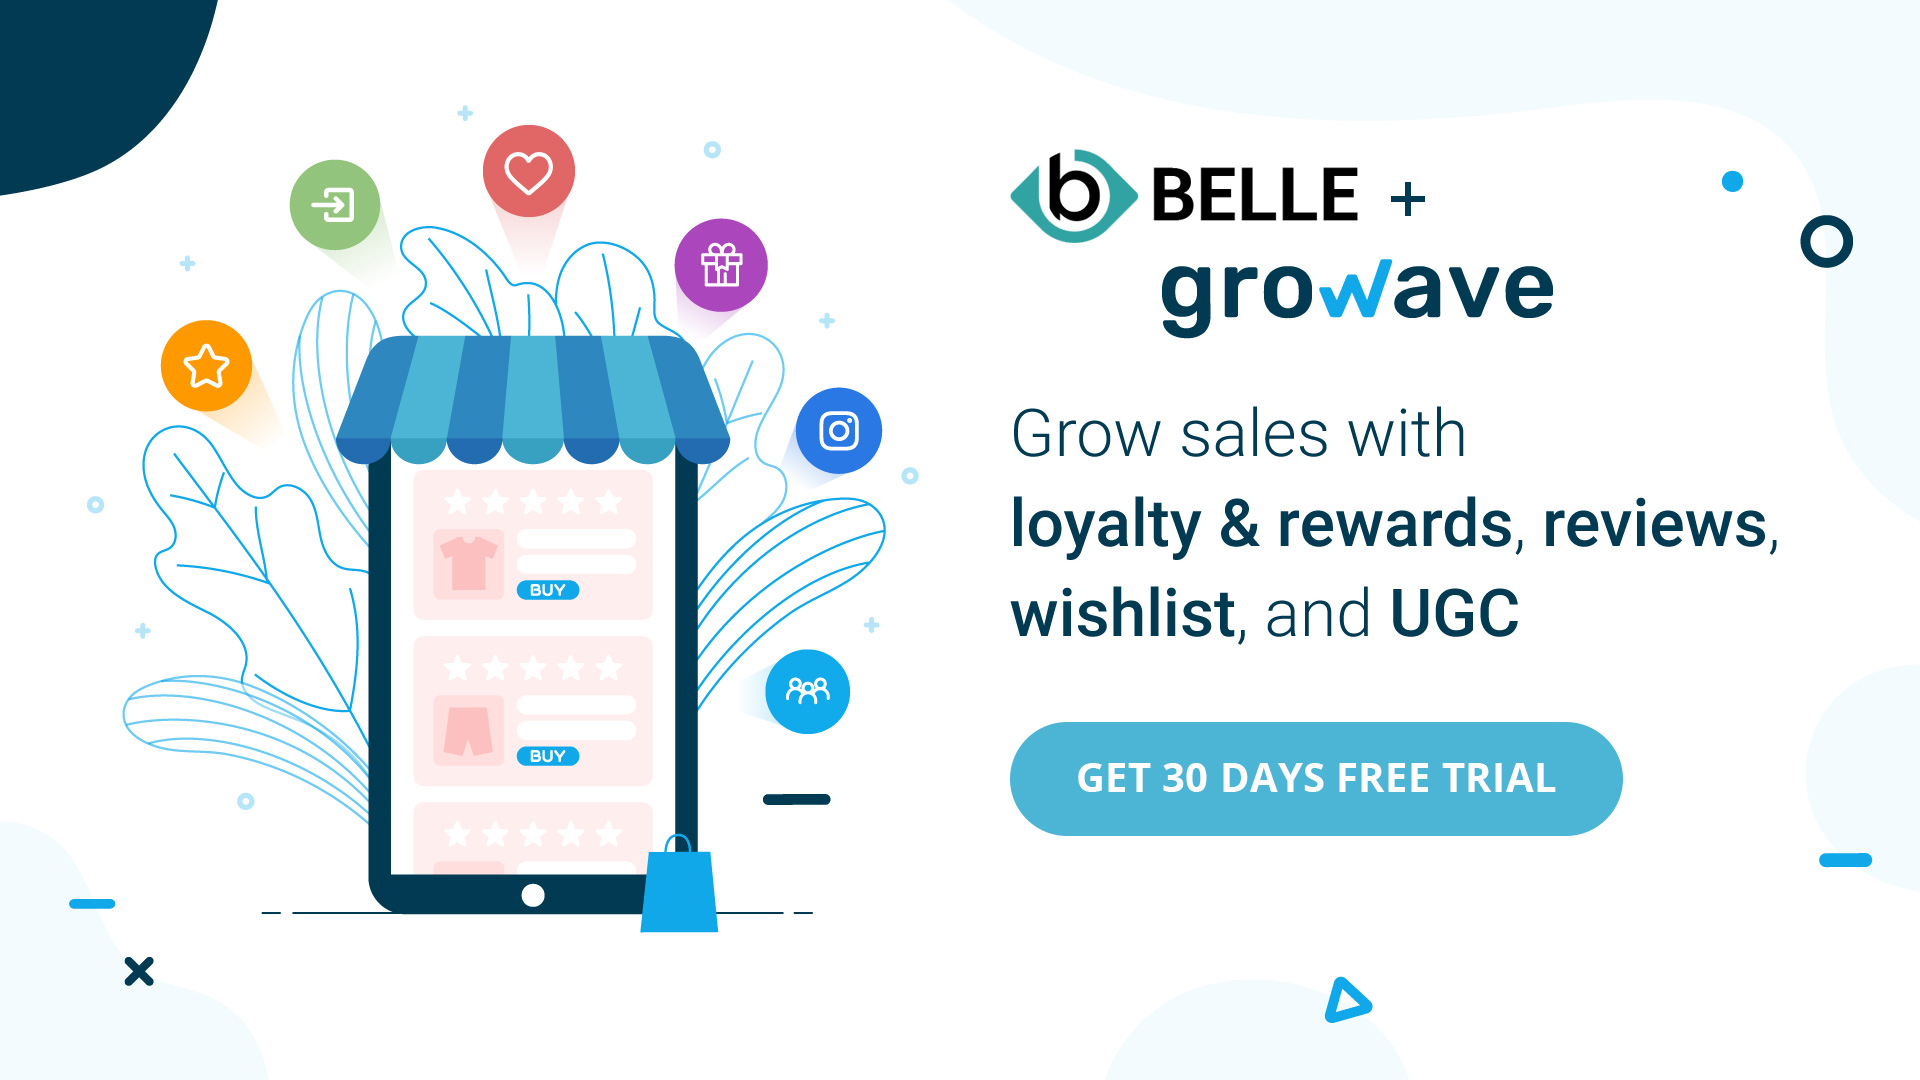 growave - Belle - Clothing and Fashion Shopify Theme